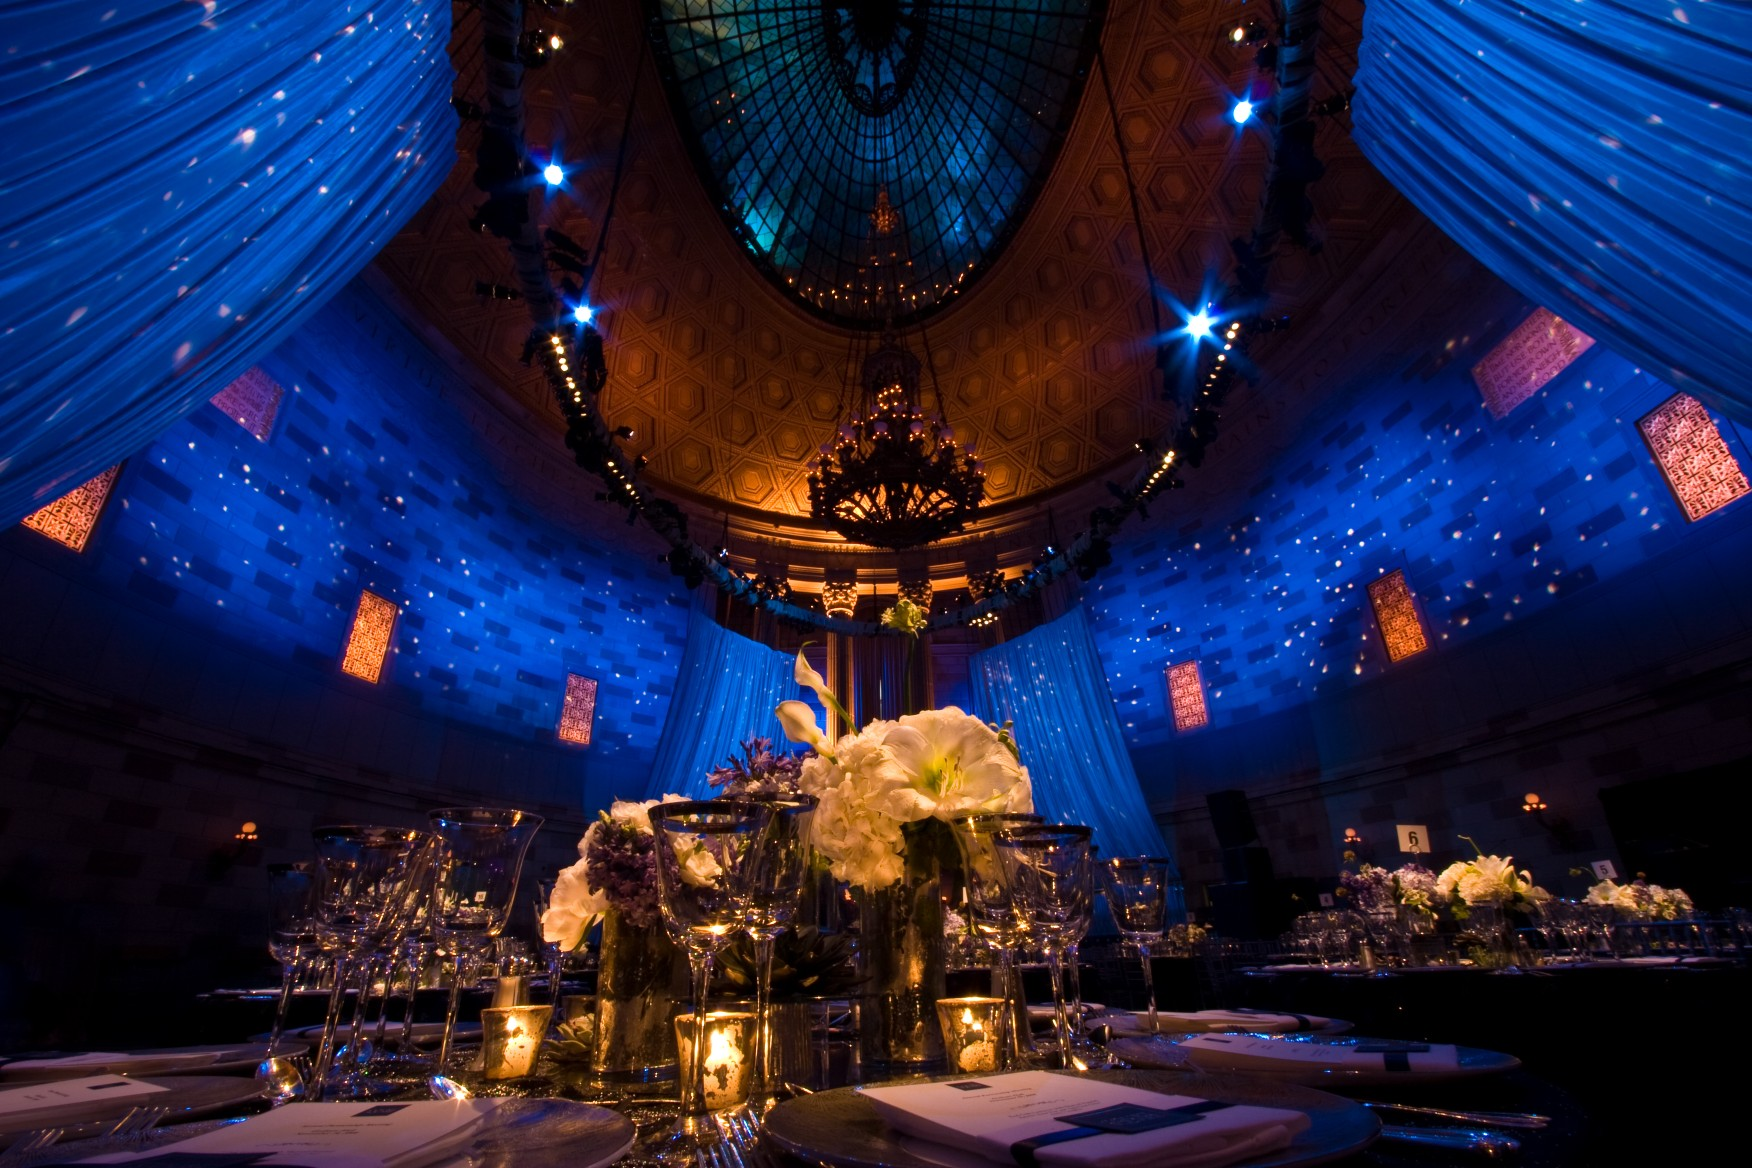 Gotham Hall Dinner Drapes1.jpg